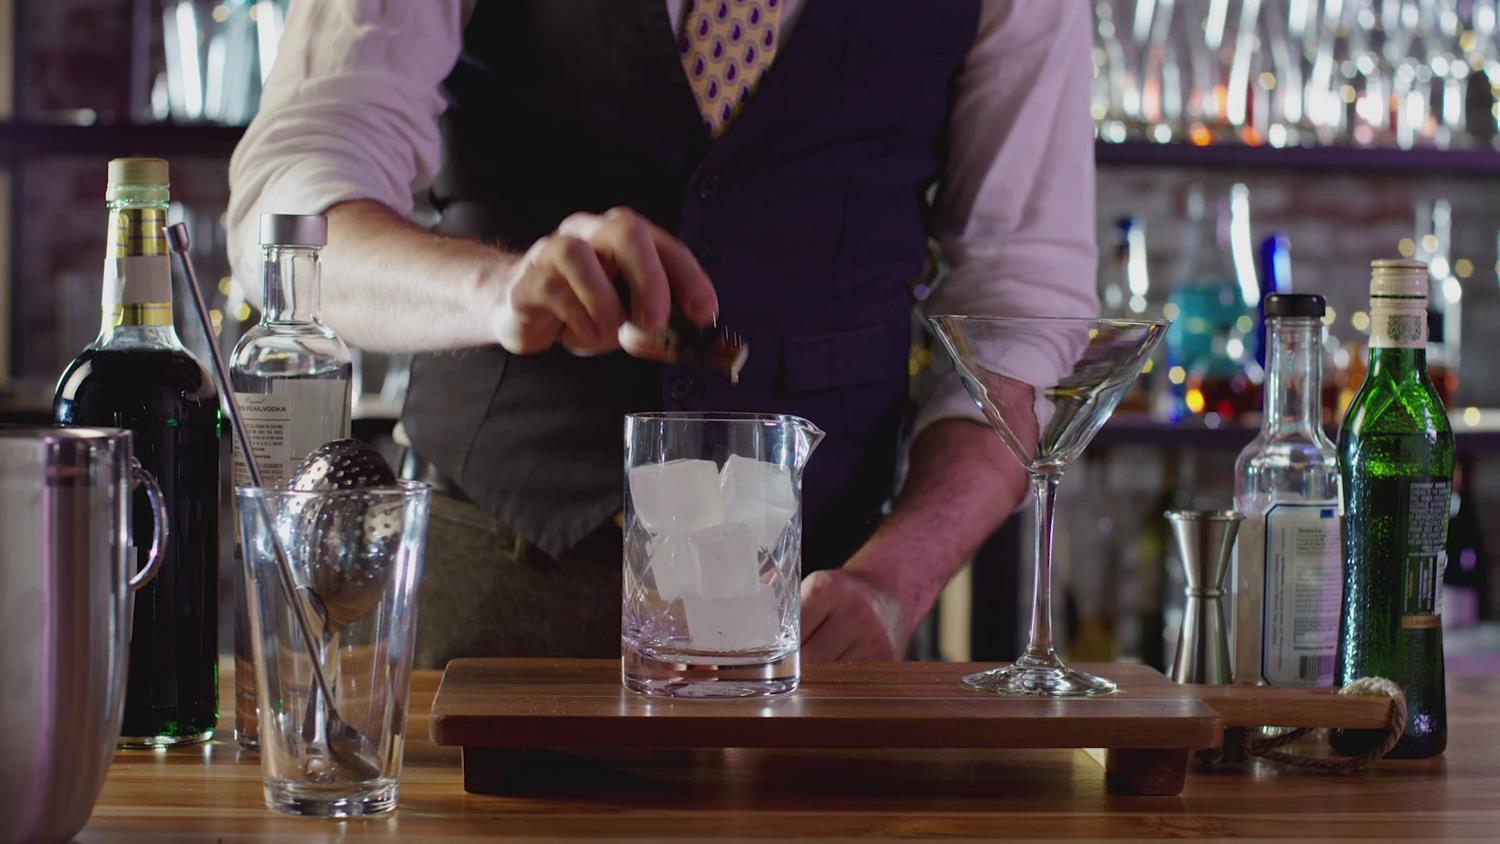 Magical Mixology: Eliot's Signature Cocktail